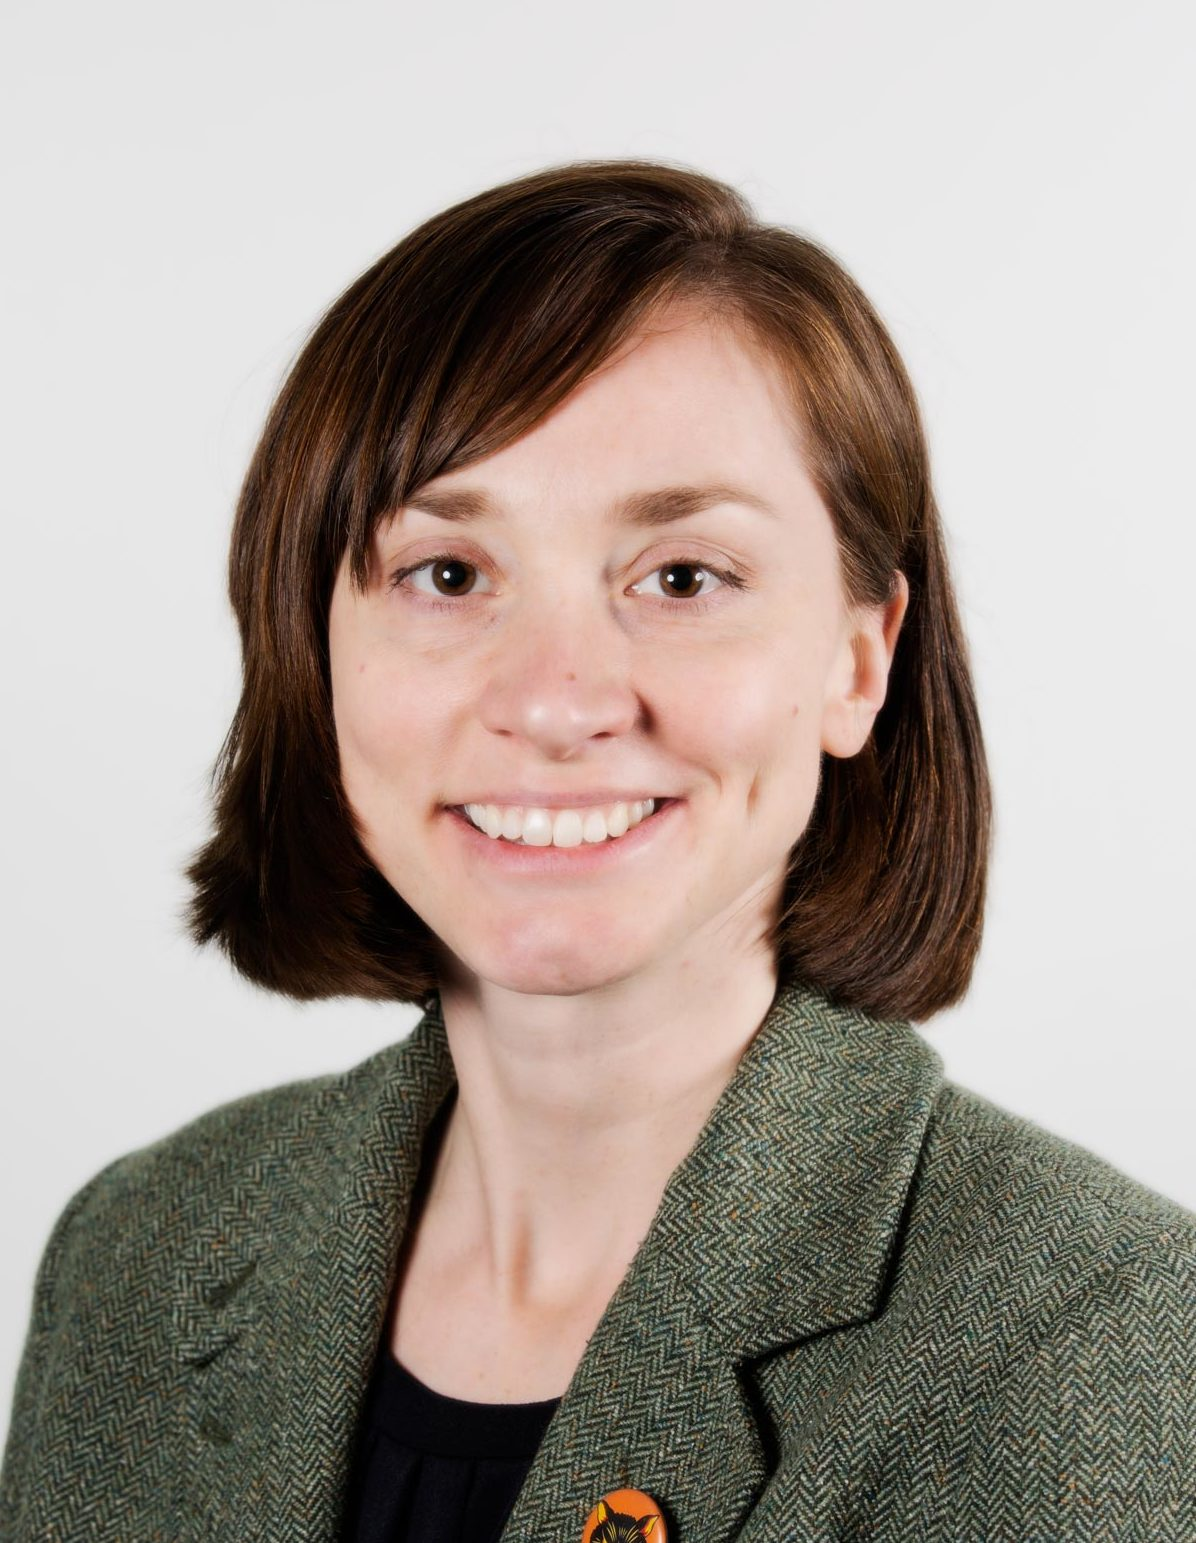 Kate Lowe, Associate Professor of Urban Planning and Policy